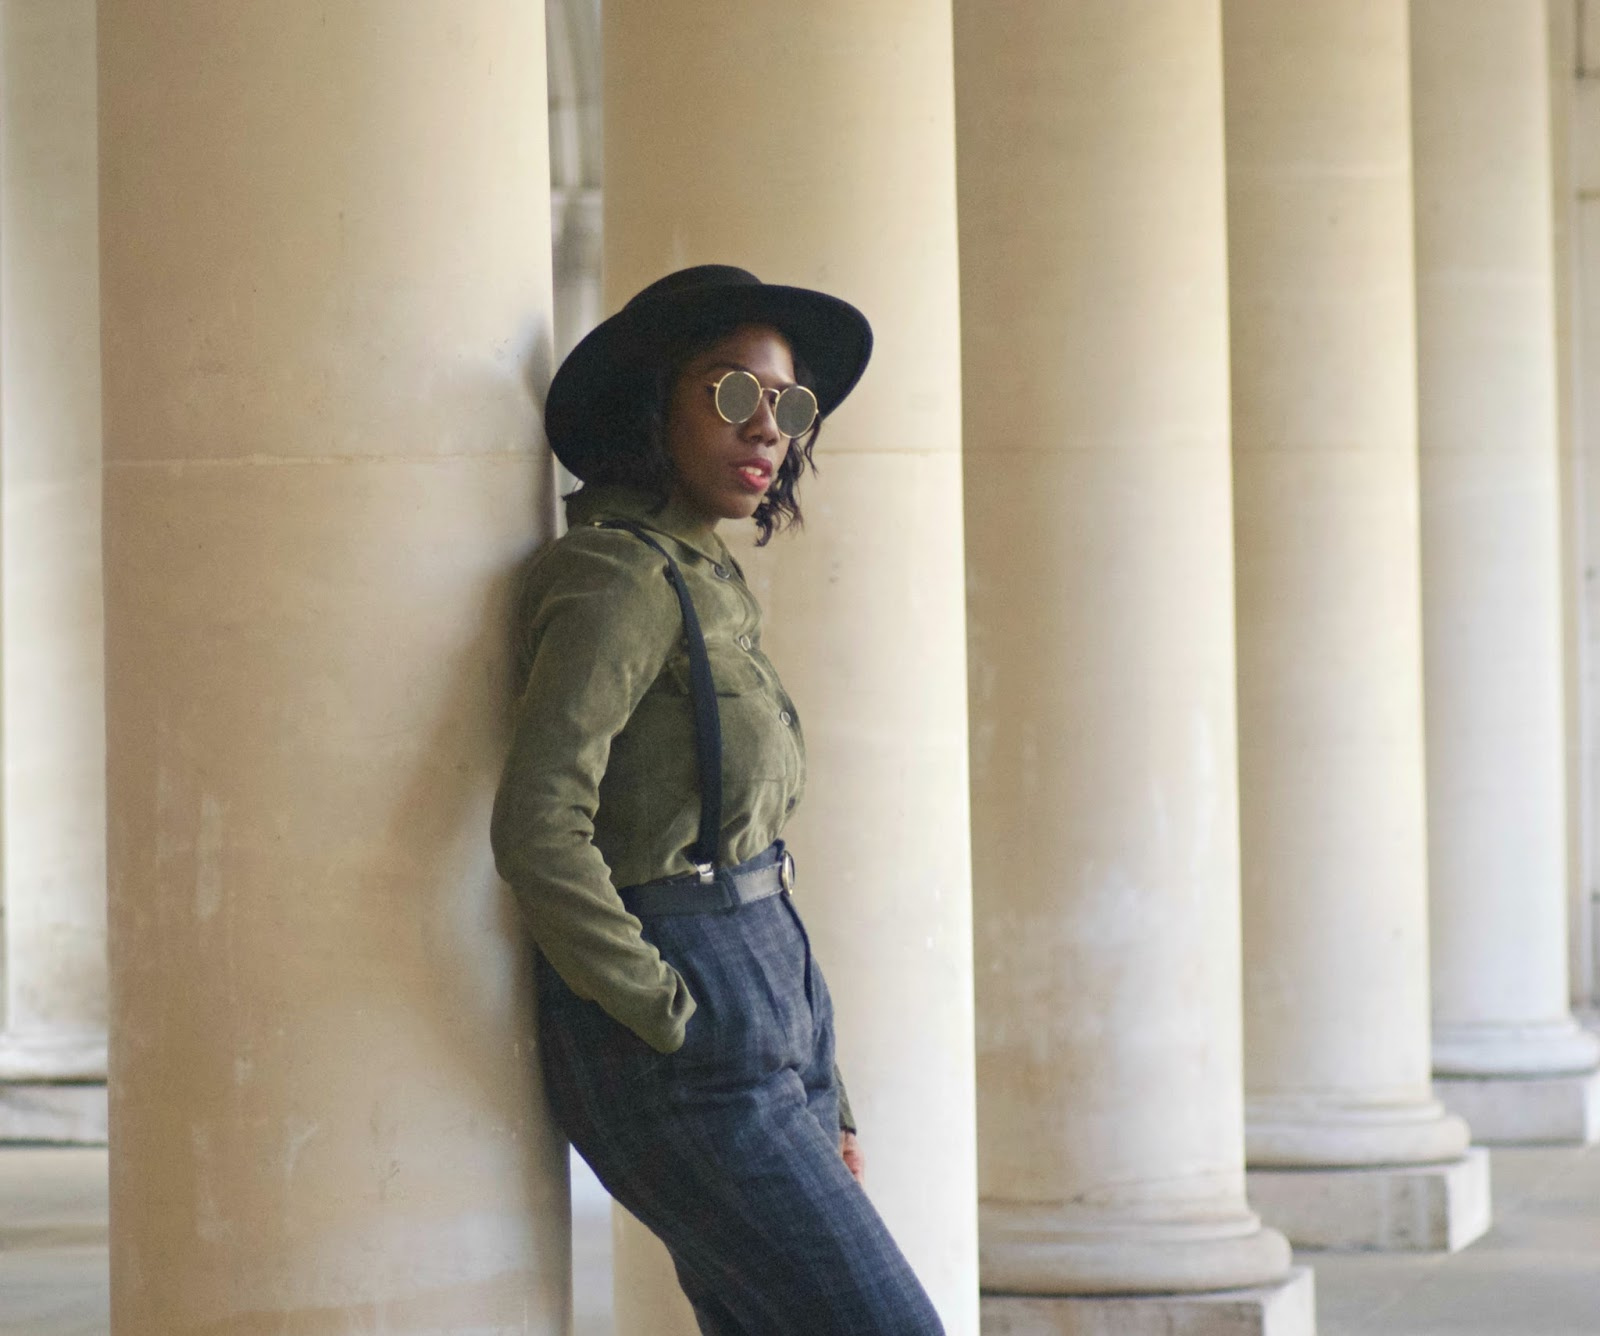 Blogger, Fashion Blogger, Zara plaid trousers, braces, suspenders, corduroy shirt, oversized woman shirt, boohoo oversized shirt, black fedora, asos aviators, temple church area,temple, uk blogger, new look black ankle boots, london style, classic styling